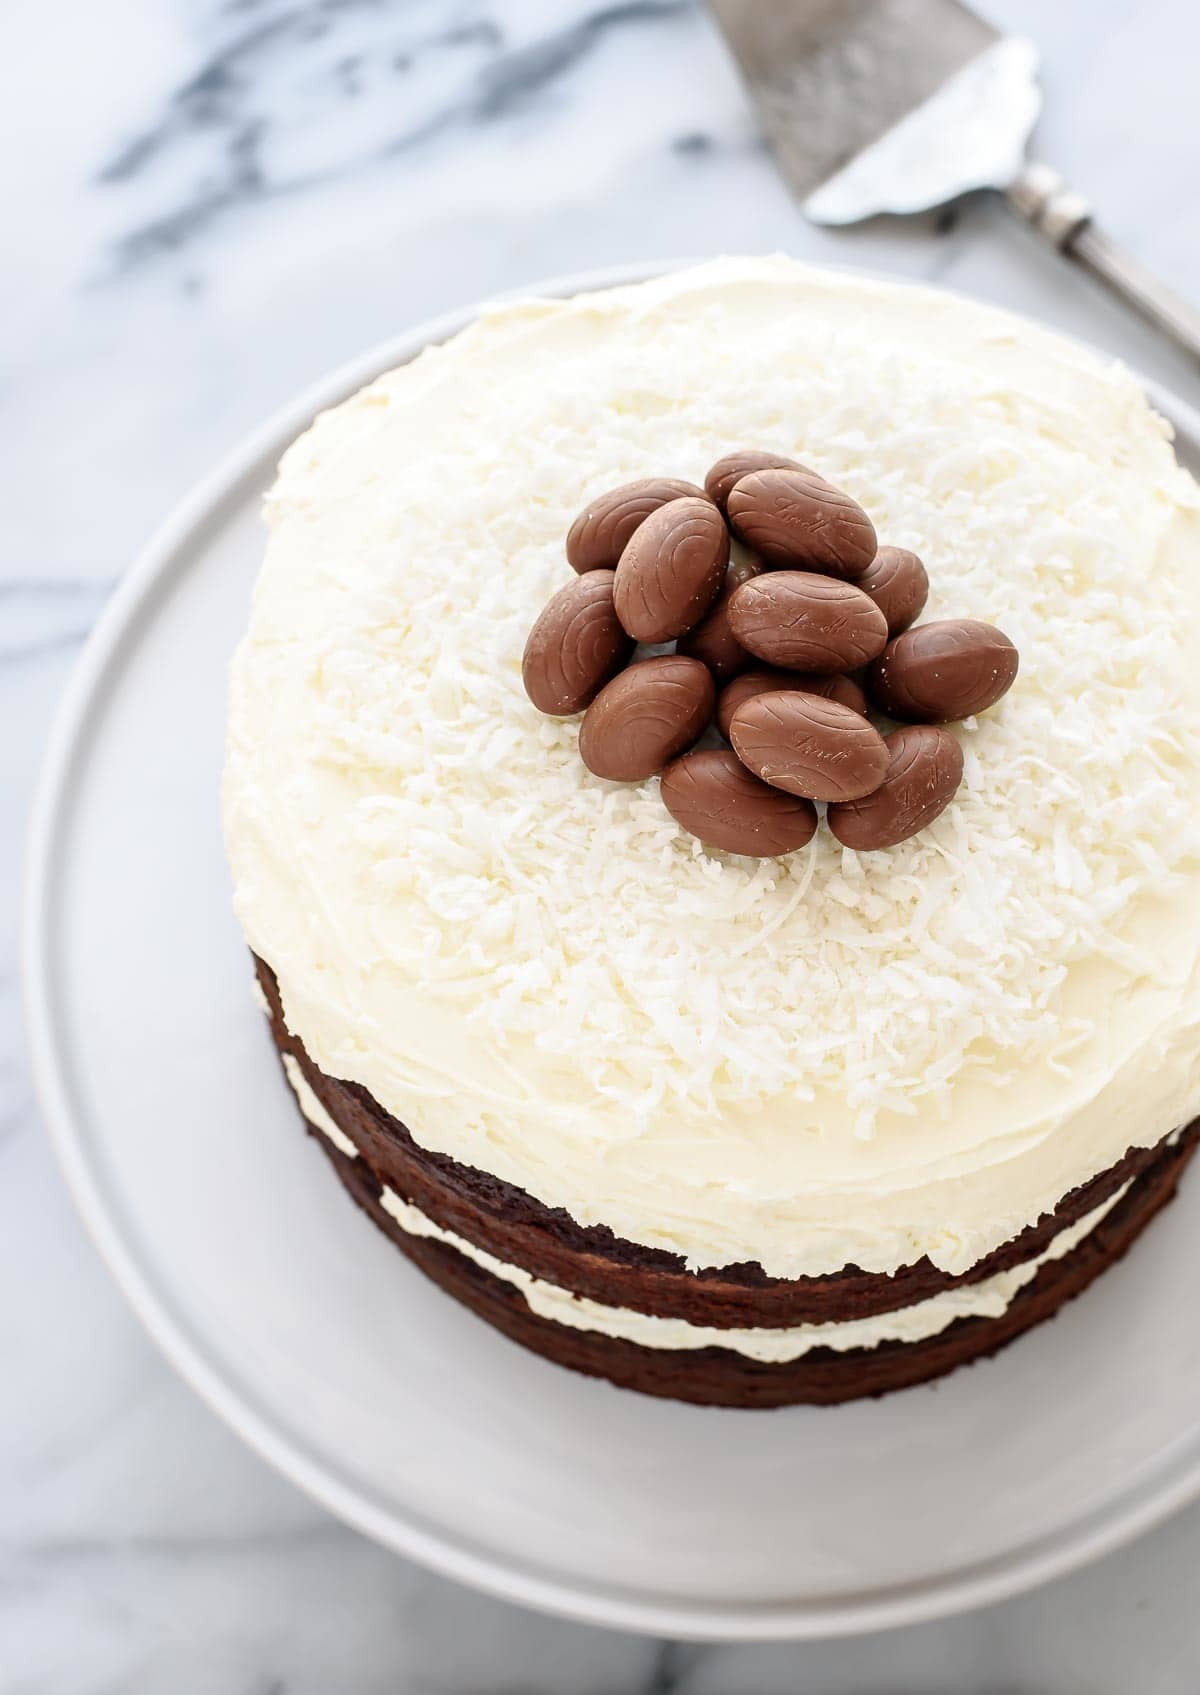 This recipe is INCREDIBLE. Triple Chocolate Easter Cake. A homemade chocolate cake with THREE kinds of chocolate, topped with chocolate Easter eggs. Perfect Easter dessert to wow your guests! @wellplated